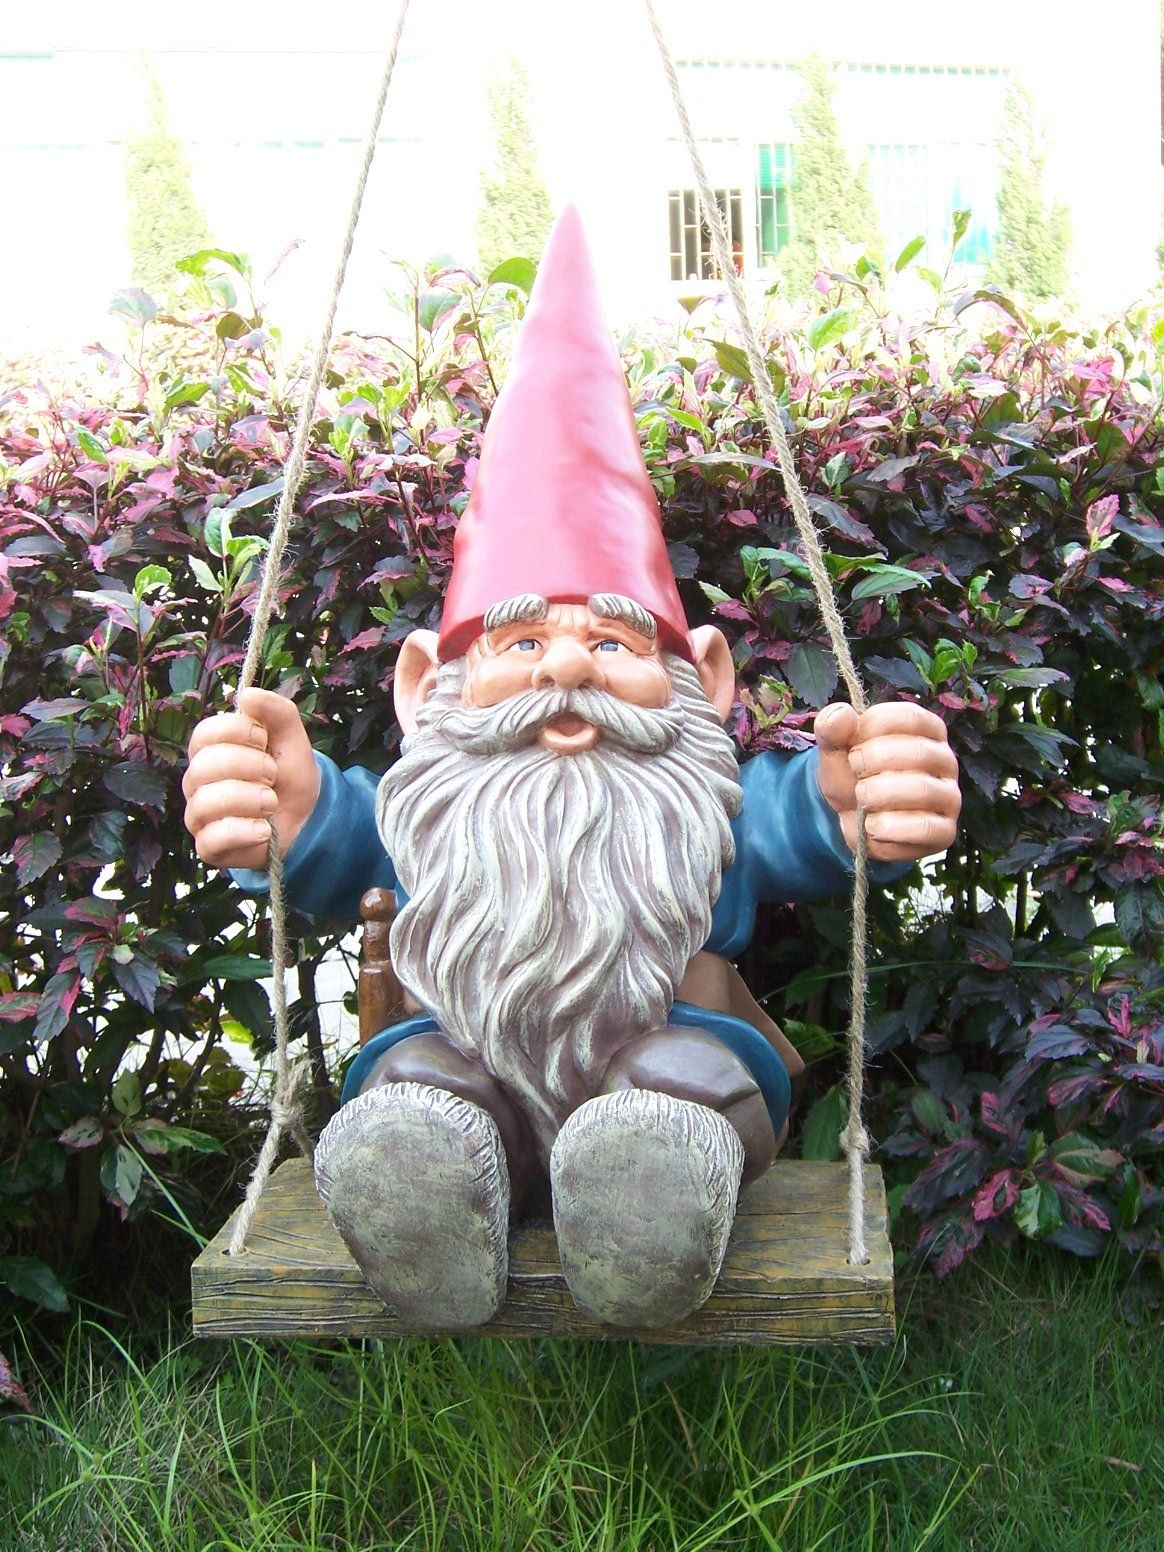 gnomb gardens resin garden gnome quality funny garden gnomes for sale - Garden Gnomes For Sale